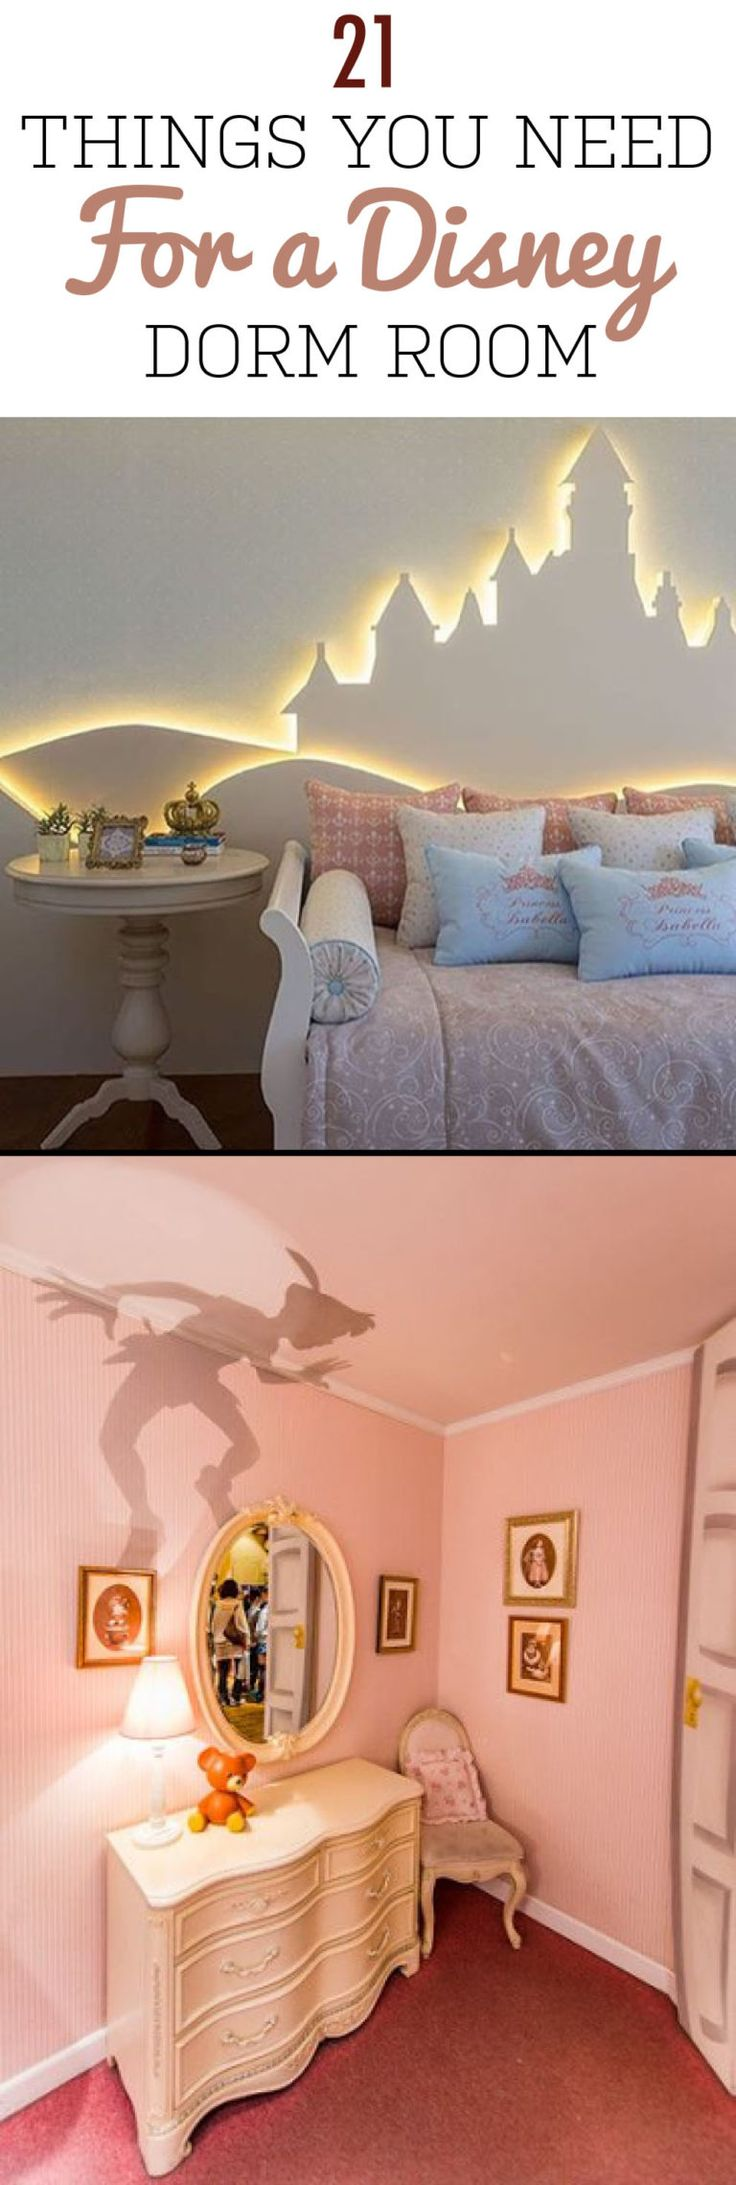 21 Things You Need for a Disney Dorm Room – Disney Bastelideen